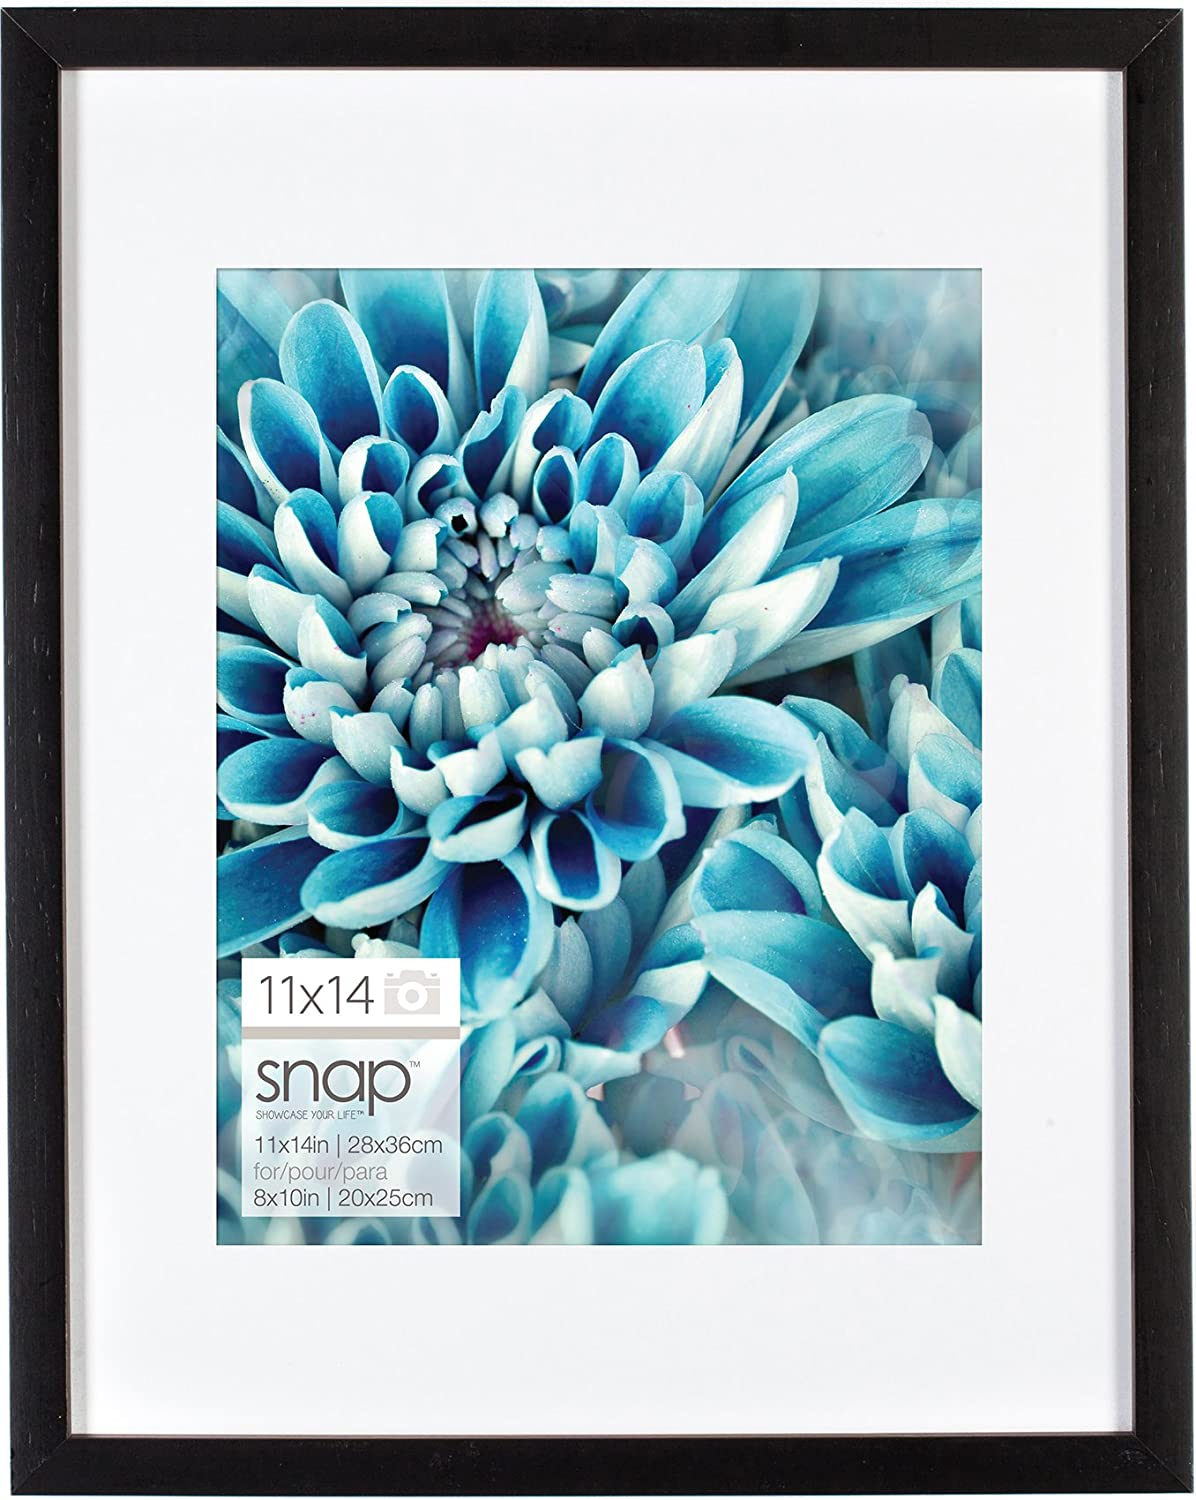 Amazon.com: Snap 11x14 Black Wood Frame with 8x10 White Mat Opening ...